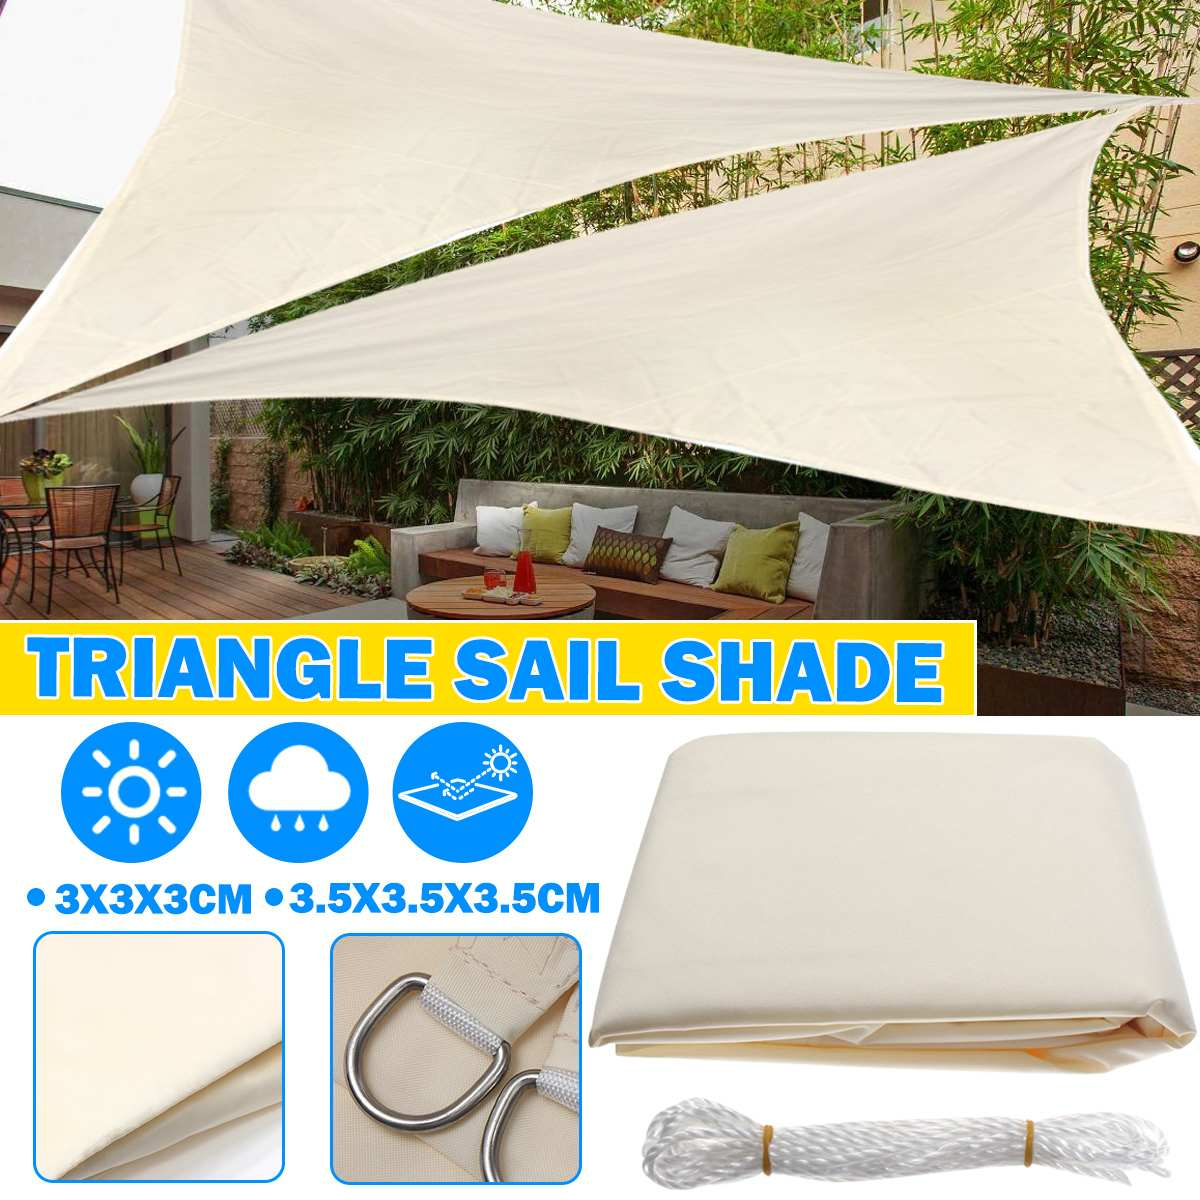 Event Shelters Gazebos Sports Outdoors Triangle Sun Shelter Sunshade Protection Outdoor Canopy Garden Patio Pool Shade Sail Awning Camping Picnic Tent